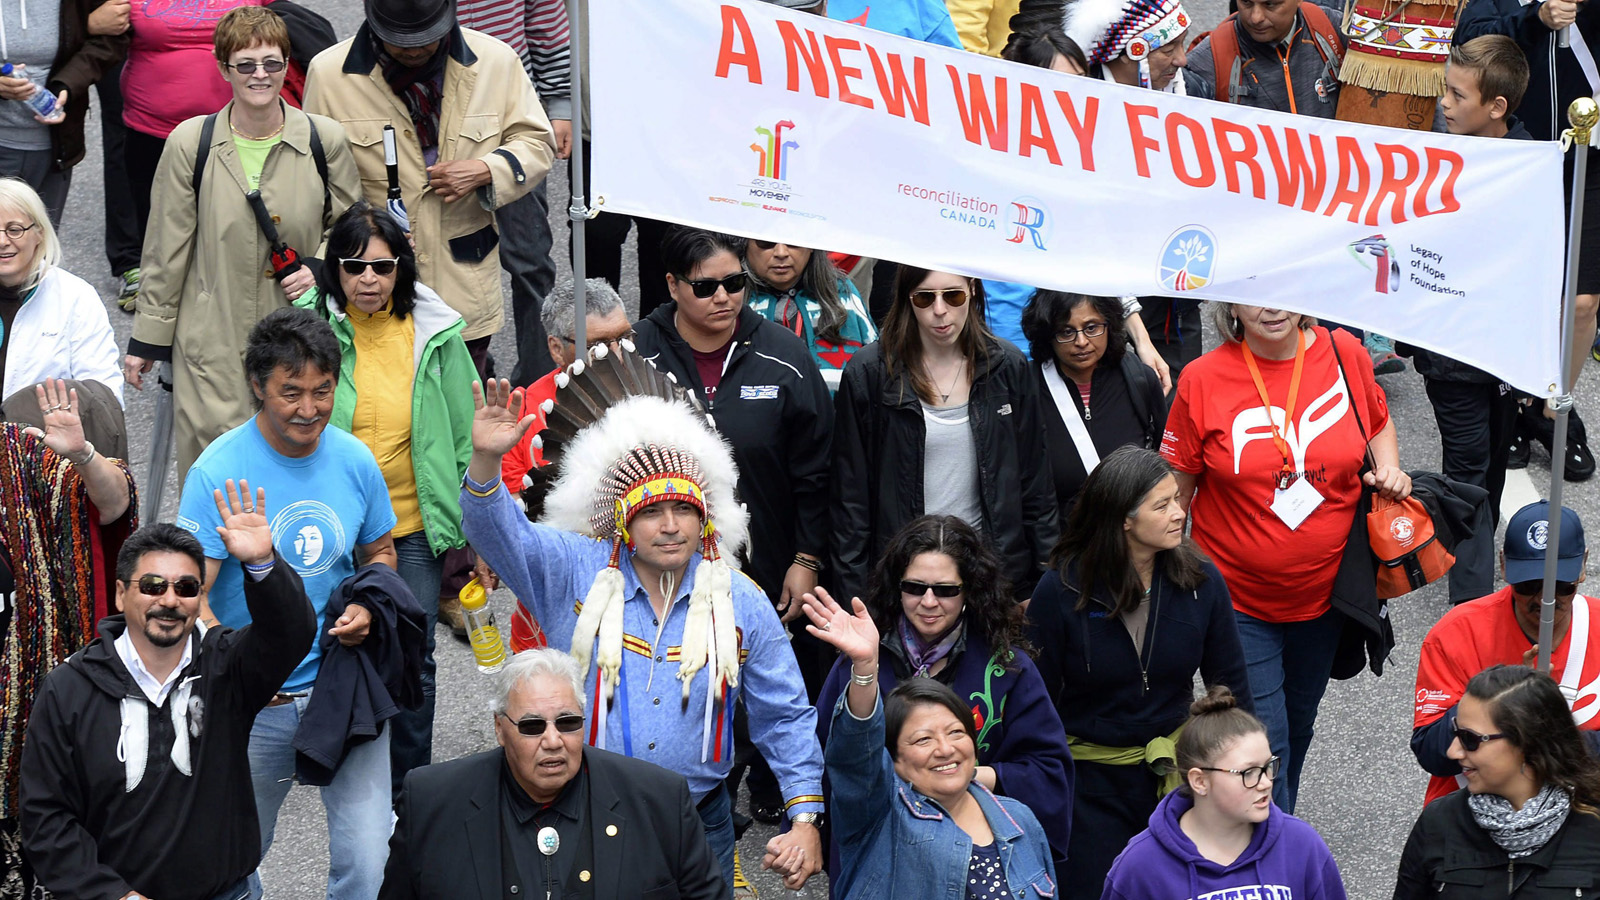 Assembly of First Nations Chief Perry Bellegarde (in headdress) and Justice Murray Sinclair (in black suit), TRC commissioner, march during the Walk for Reconciliation, part of the closing events of the Truth and Reconciliation Commission on Sunday, May 31, 2015 in Gatineau, Que. Beginning in the 1870s, over 150,000 First Nations, Metis and Inuit children were required to attend government-funded, church-run residential schools in an attempt to assimilate them into Canadian society; the last school closed in 1996. Students were prohibited from speaking their own languages, practicing their culture and often experienced physical and sexual abuse. Justin Tang/CP